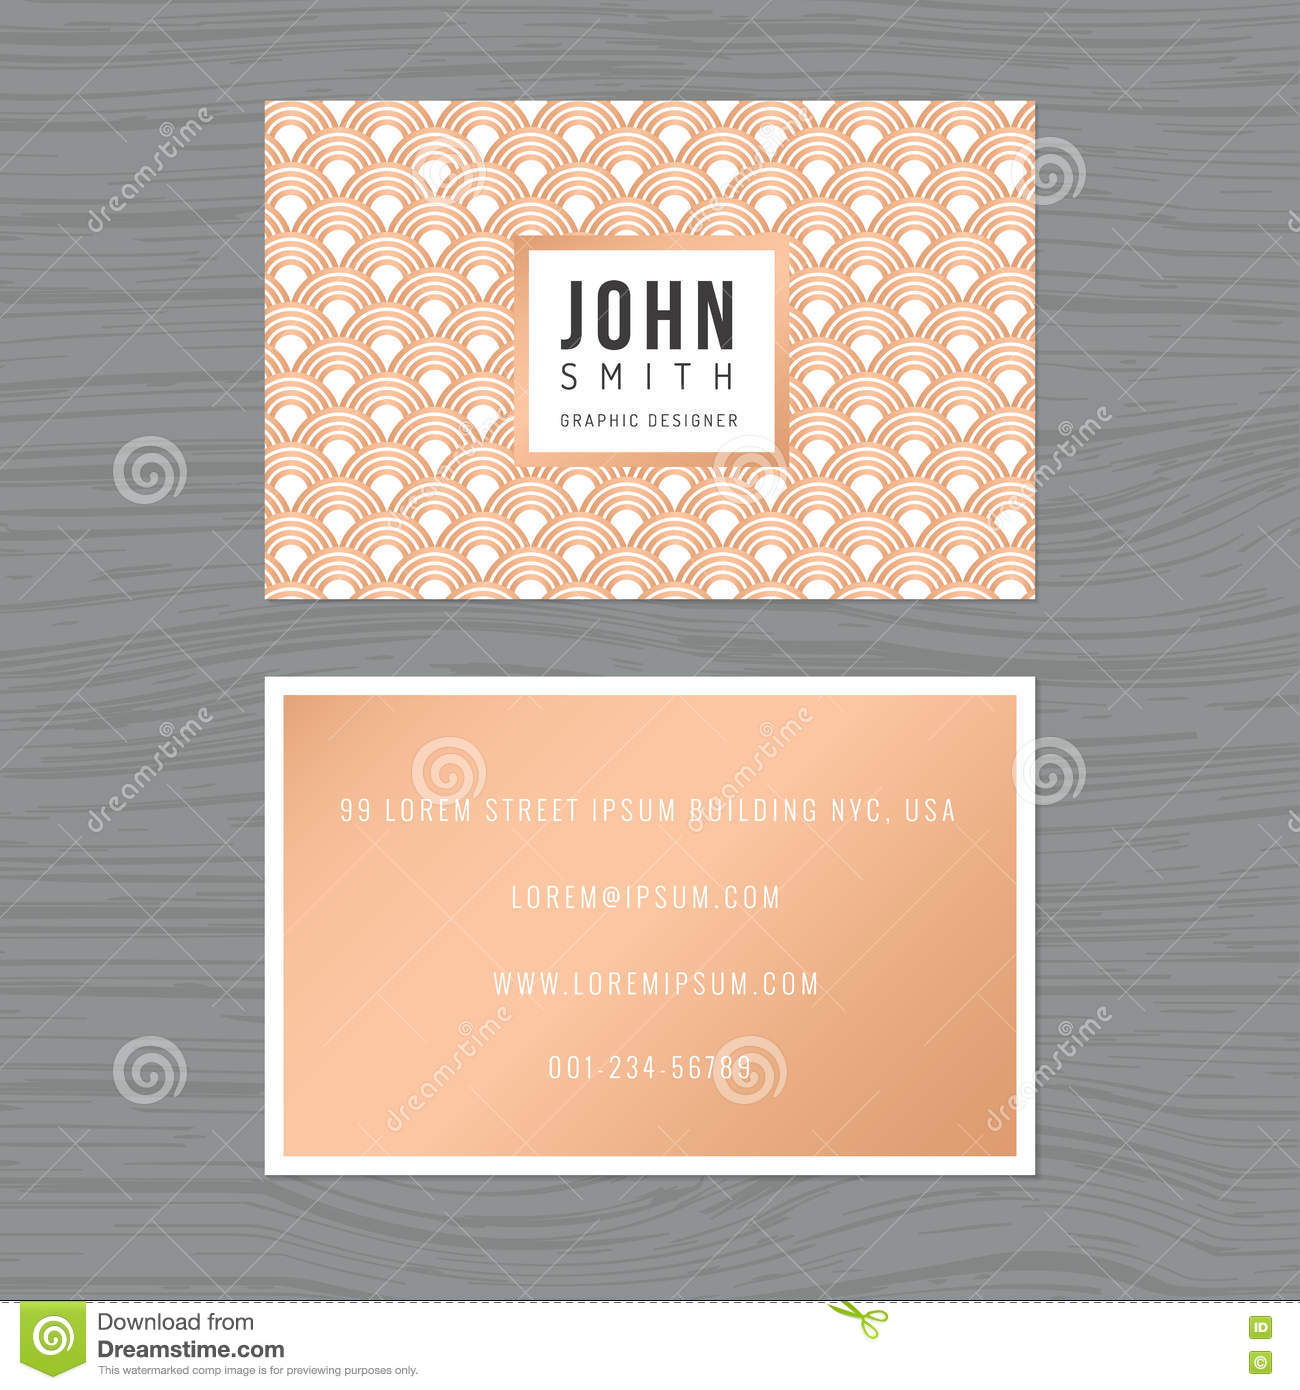 Modern business card template in japanese wave pattern background download modern business card template in japanese wave pattern background printing design template stock reheart Gallery